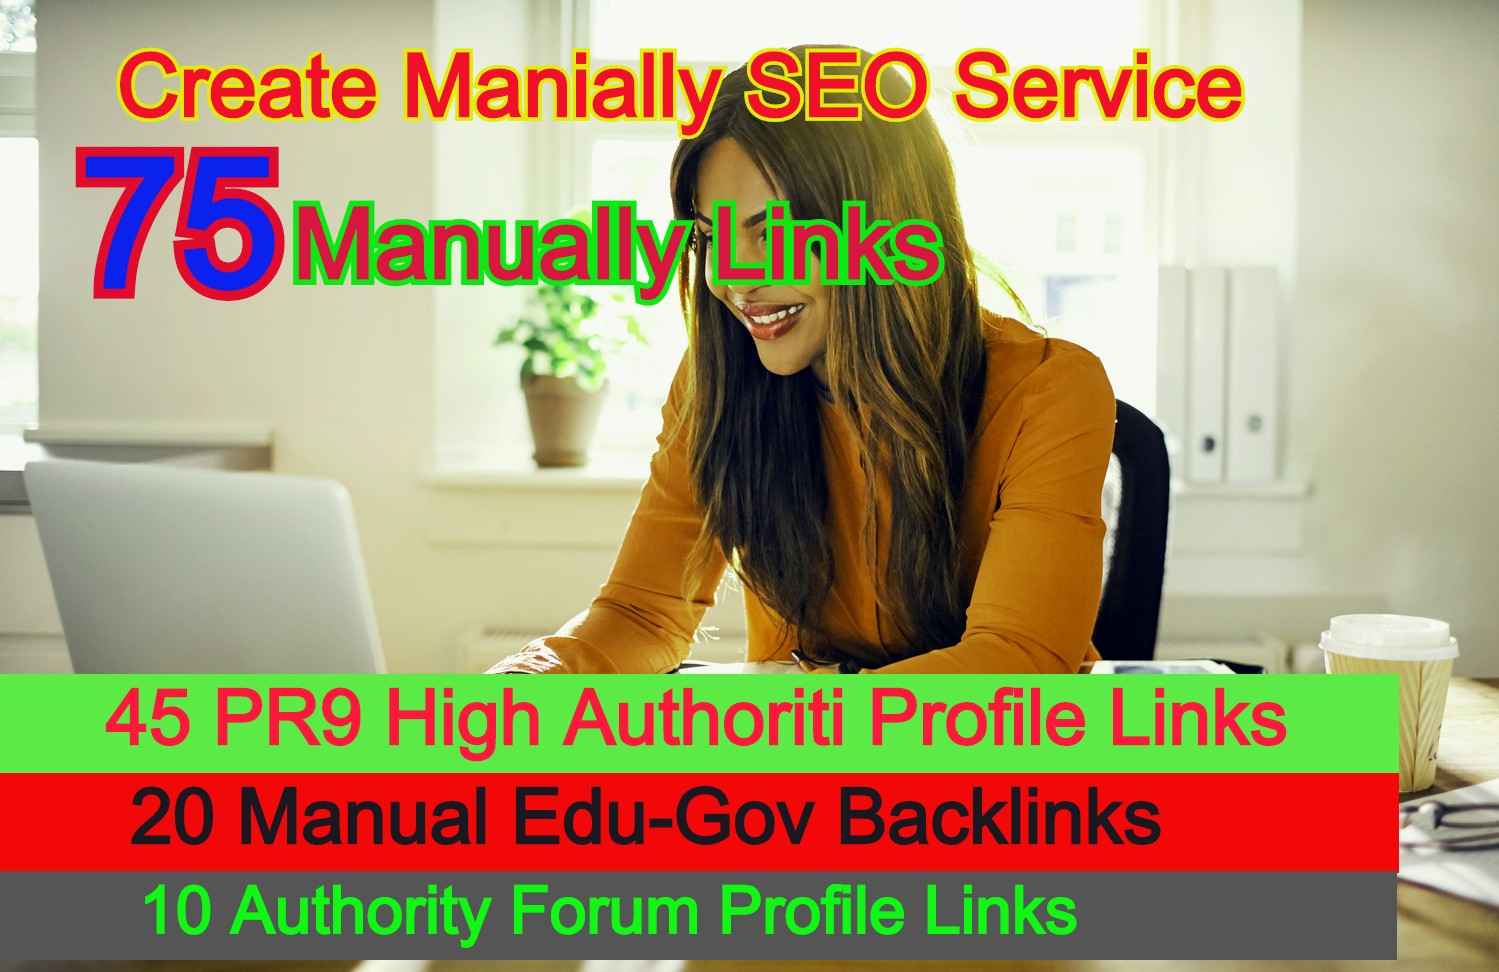 I Will Create 75 Manually Links From 45 PR9 + 20 Manually Edu-Gov Profile 10 Forum Profile links